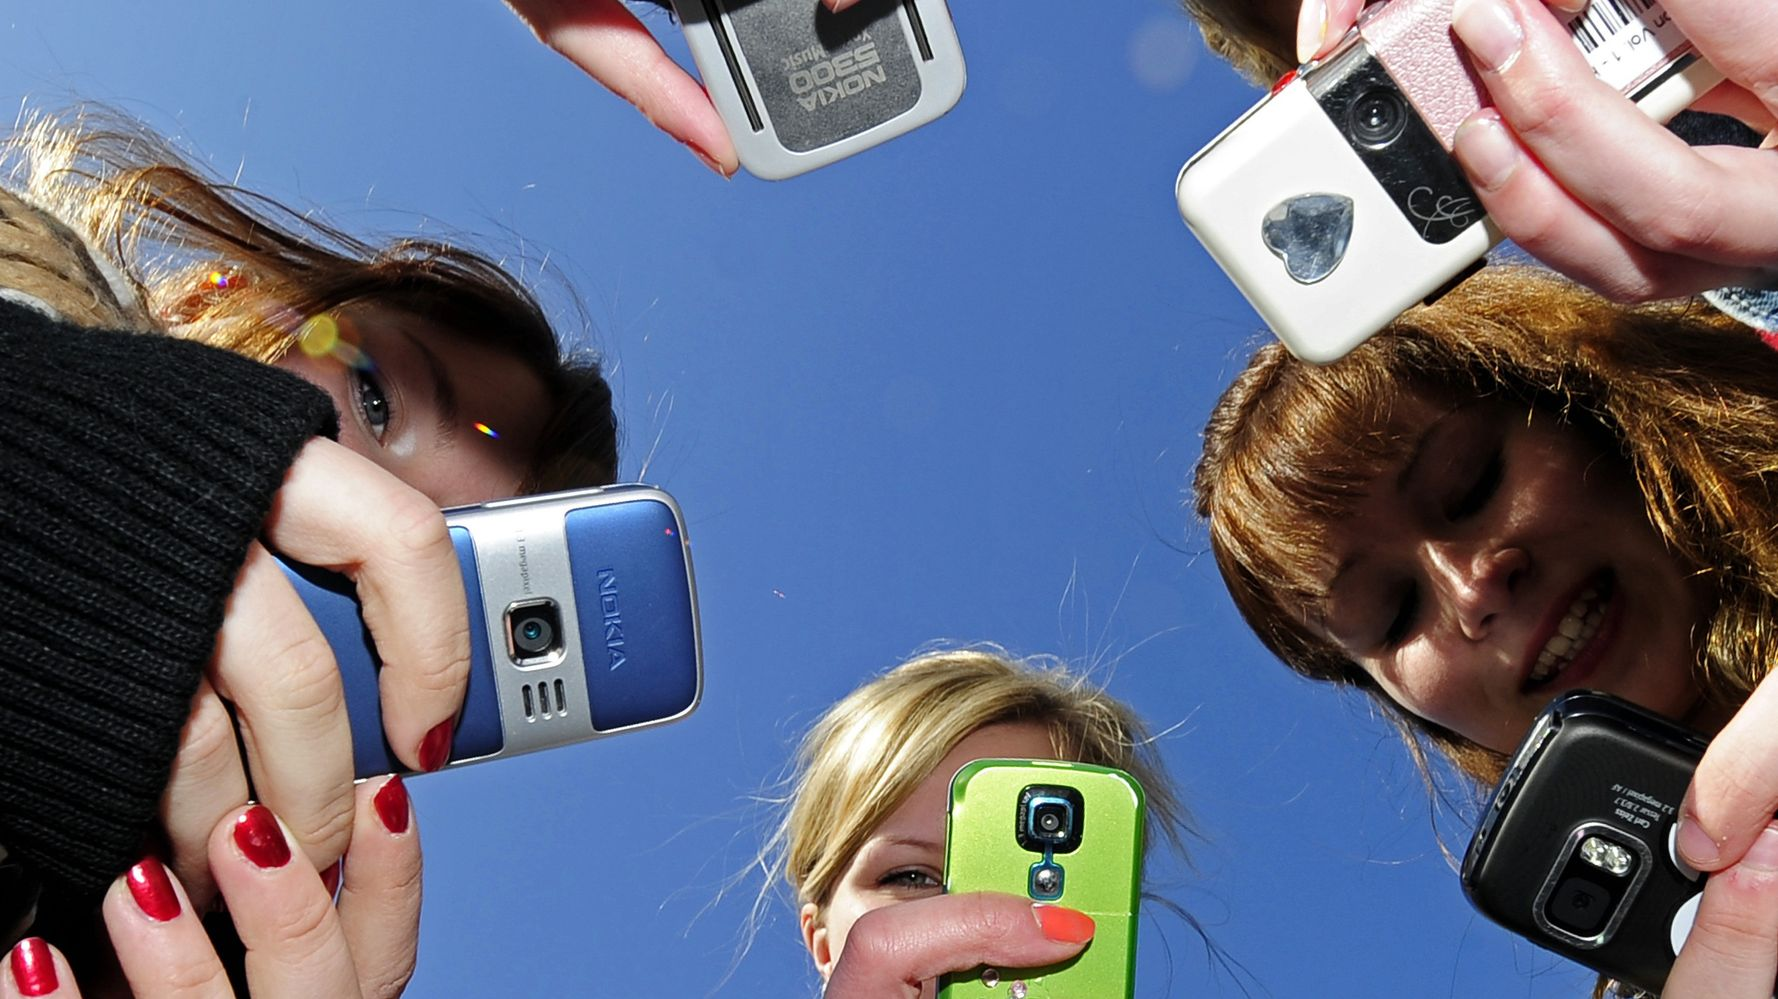 5 Apps To Spy On Your Kids Without Them Knowing | HuffPost